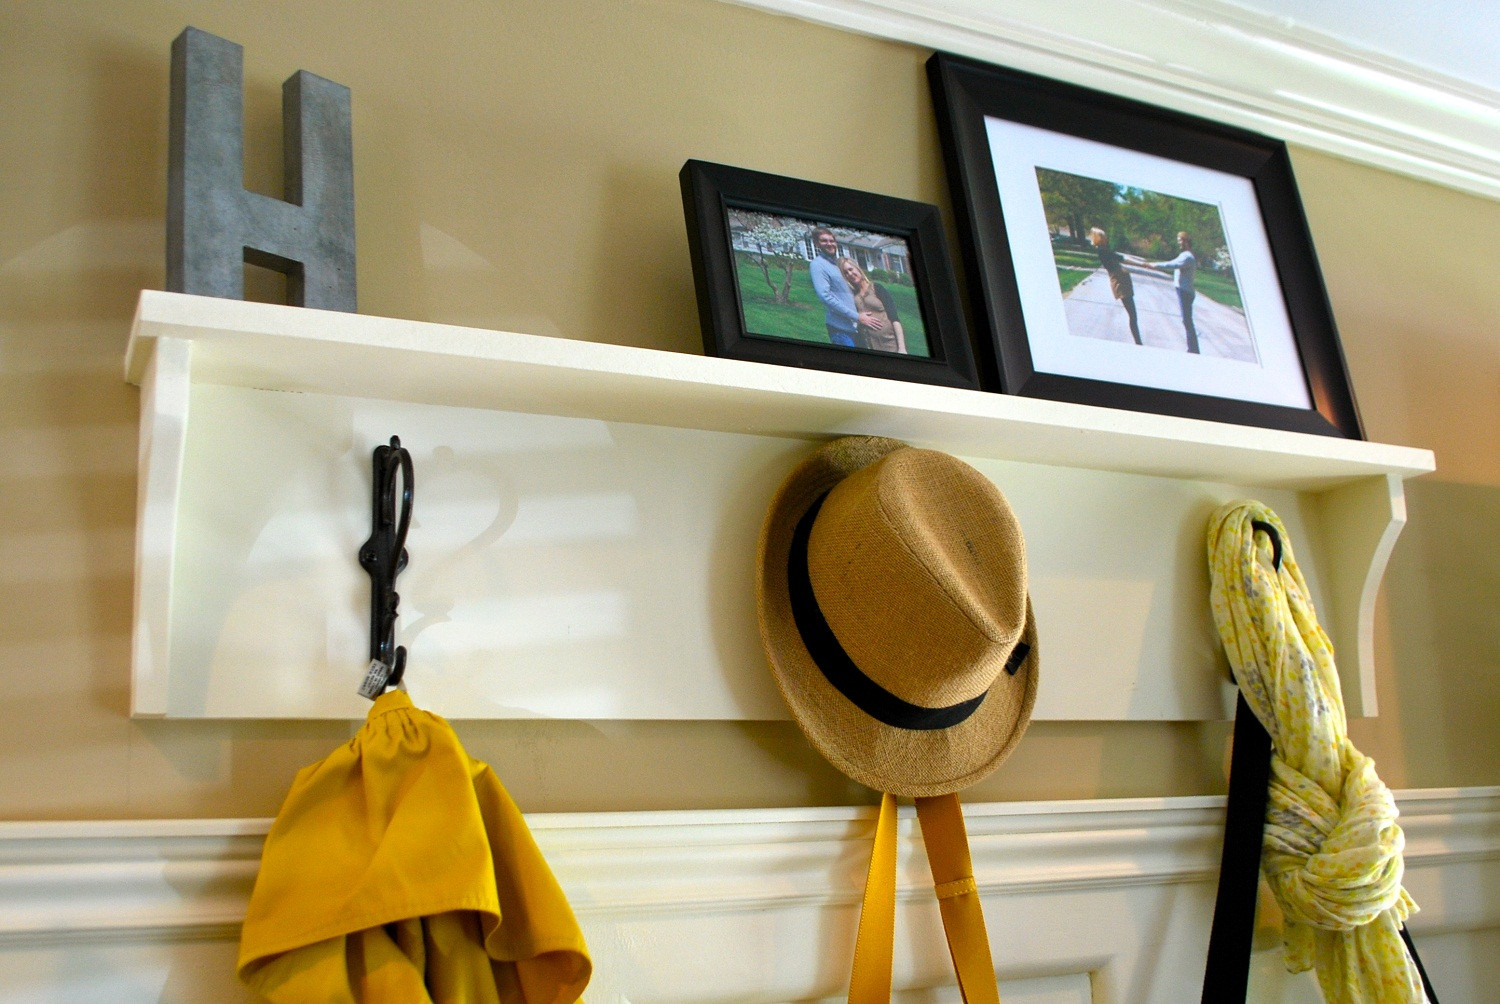 DIY Wall Mounted Coat Rack With Shelf  Interesting DIY Coat Racks to Use in Your Home